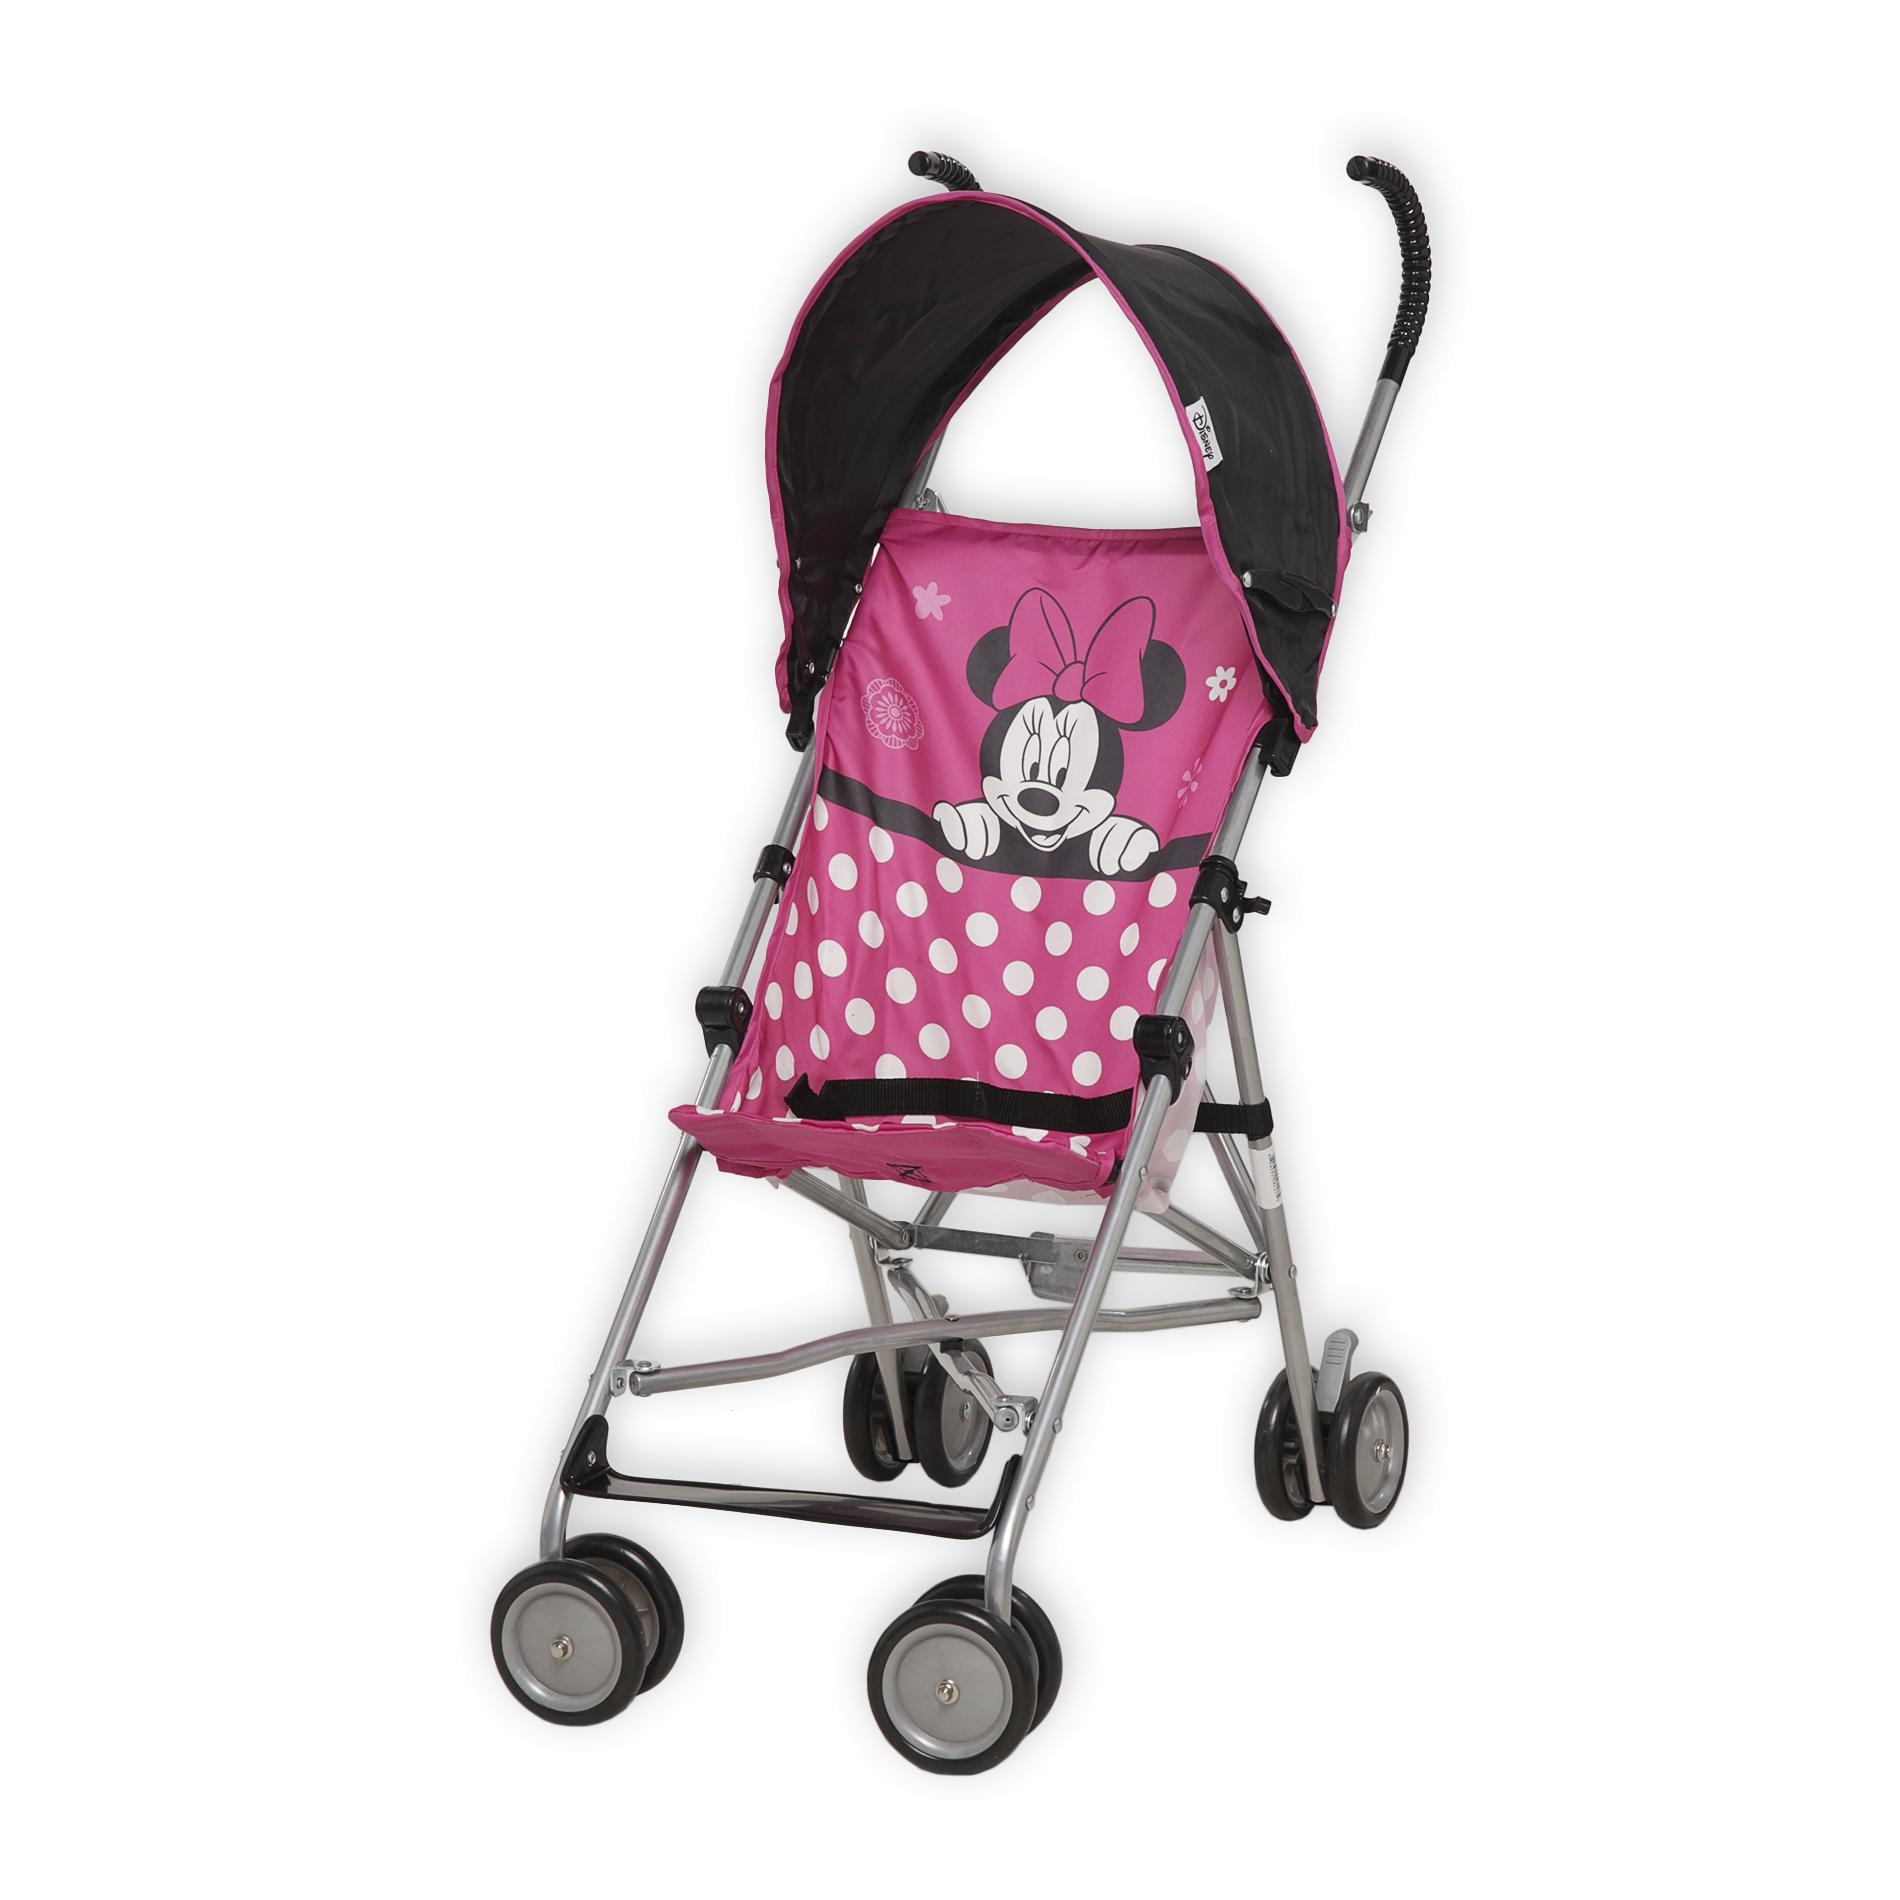 Disney Baby Umbrella Stroller